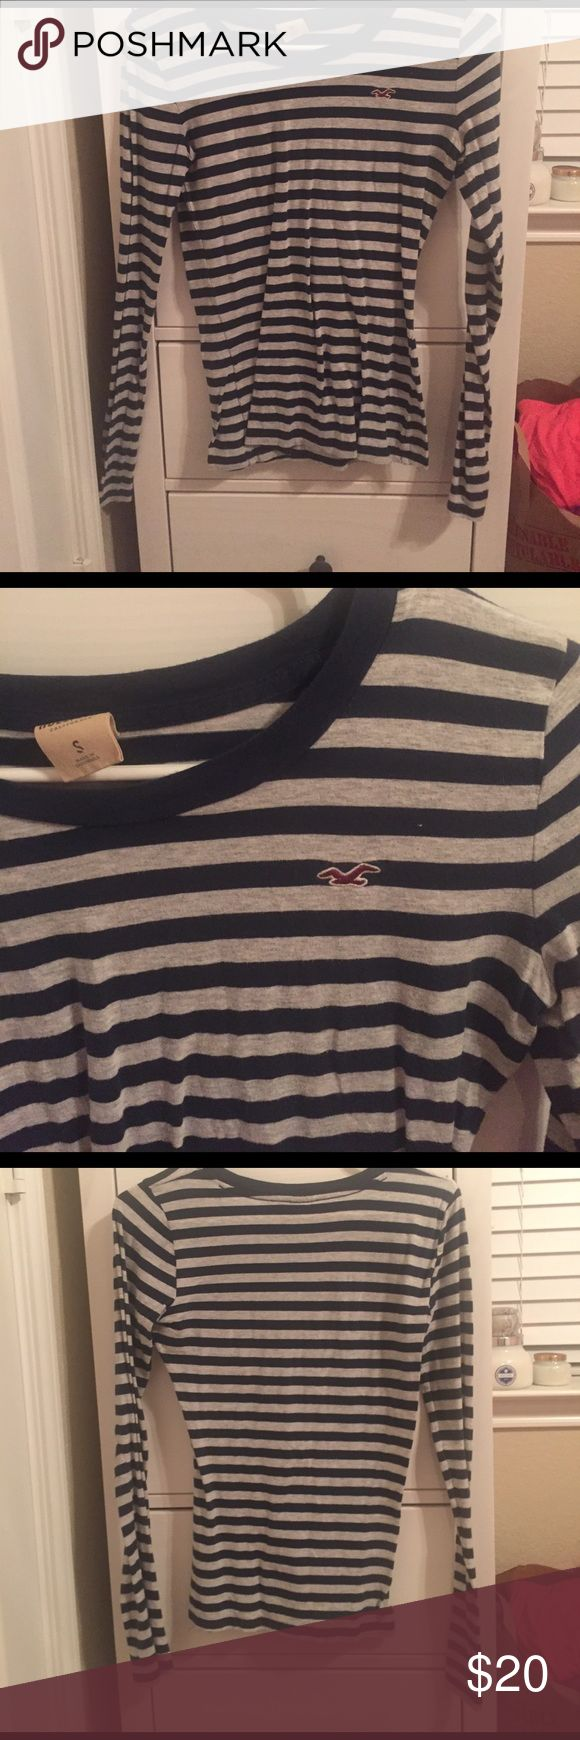 Hollister striped long sleeve shirt Blue and gray striped long sleeve shirt Hollister Tops Tees - Long Sleeve